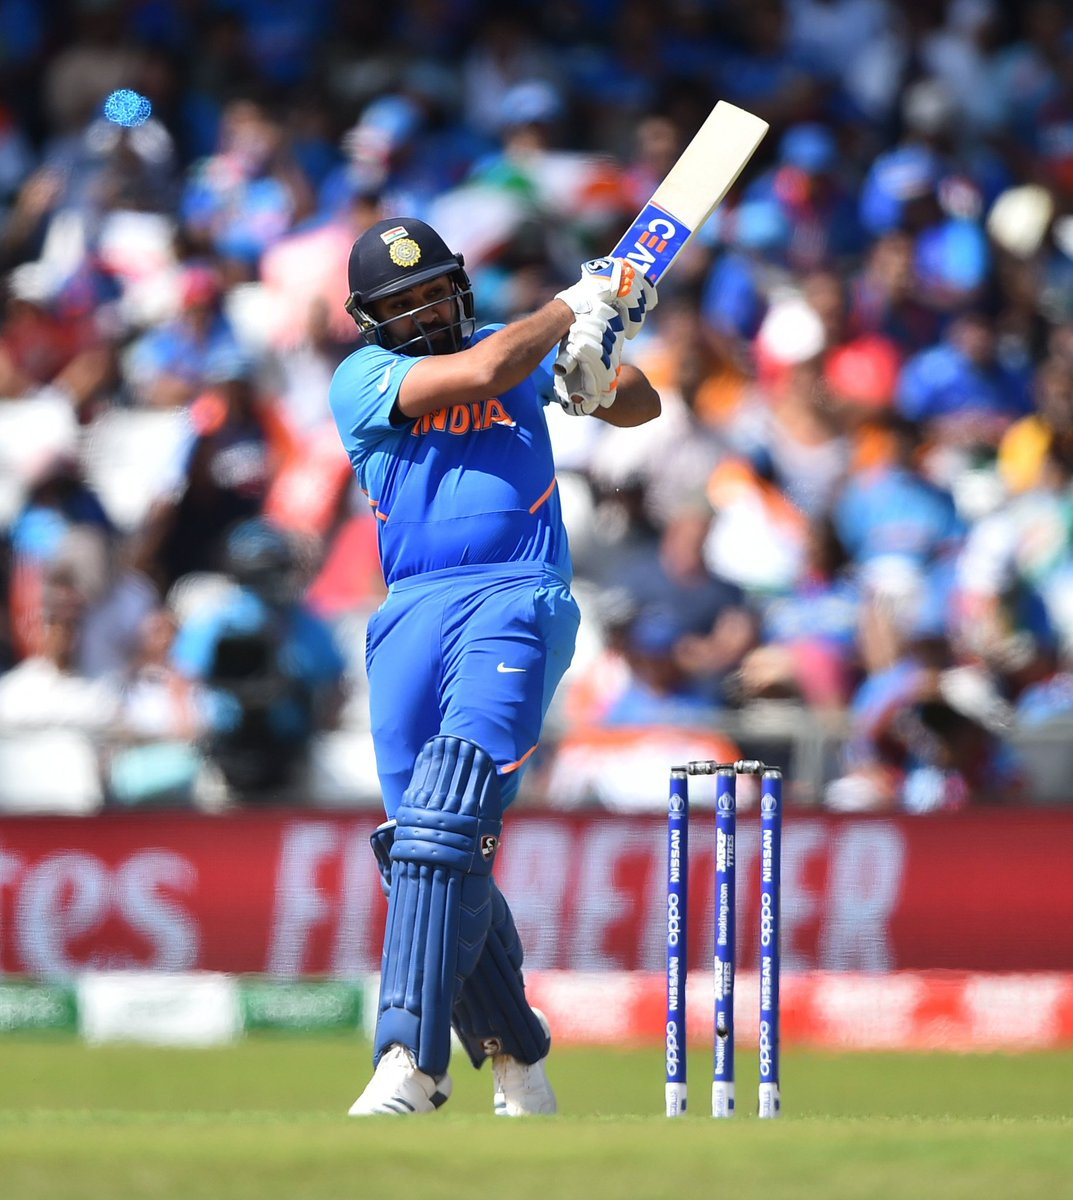 3 consecutive 100s and 5 in a single @cricketworldcup is just phenomenal, Rohit. Very good to see @klrahul11 go on to convert a good knock into a 100 as well!👌 Good signs. 🙂 #CWC19 #INDvSL